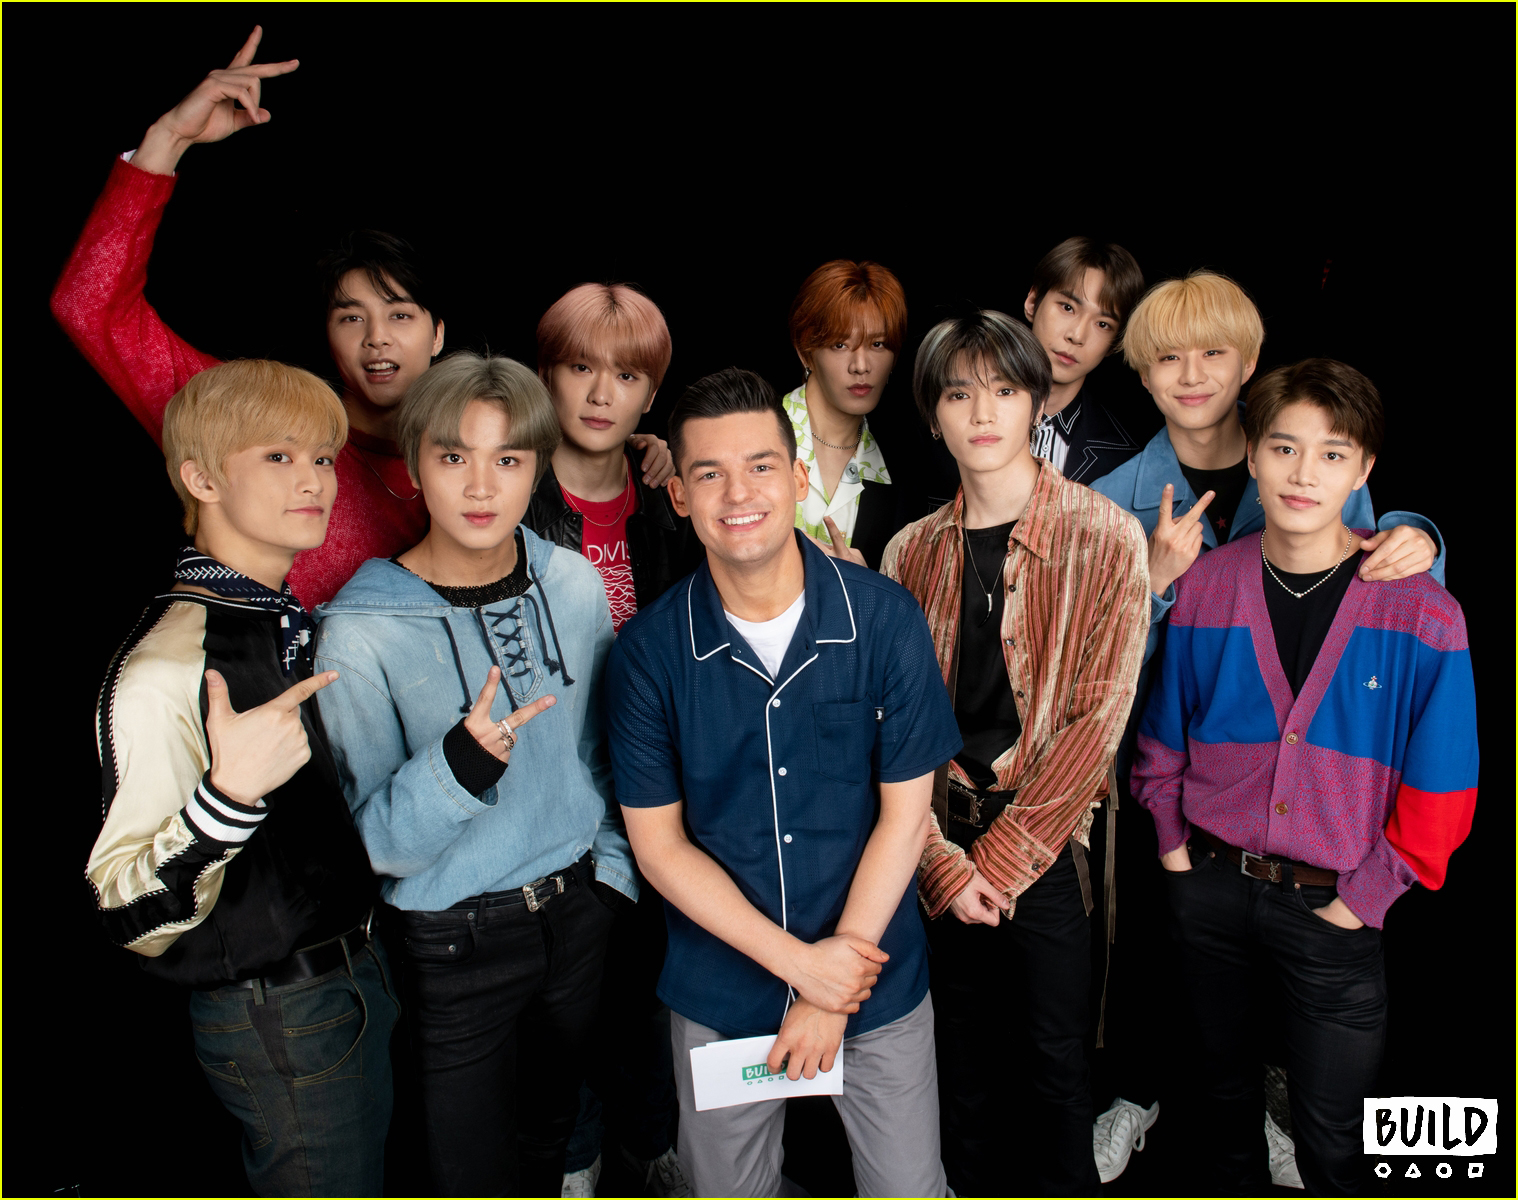 nct 127 look up to justin bieber as a role model 07